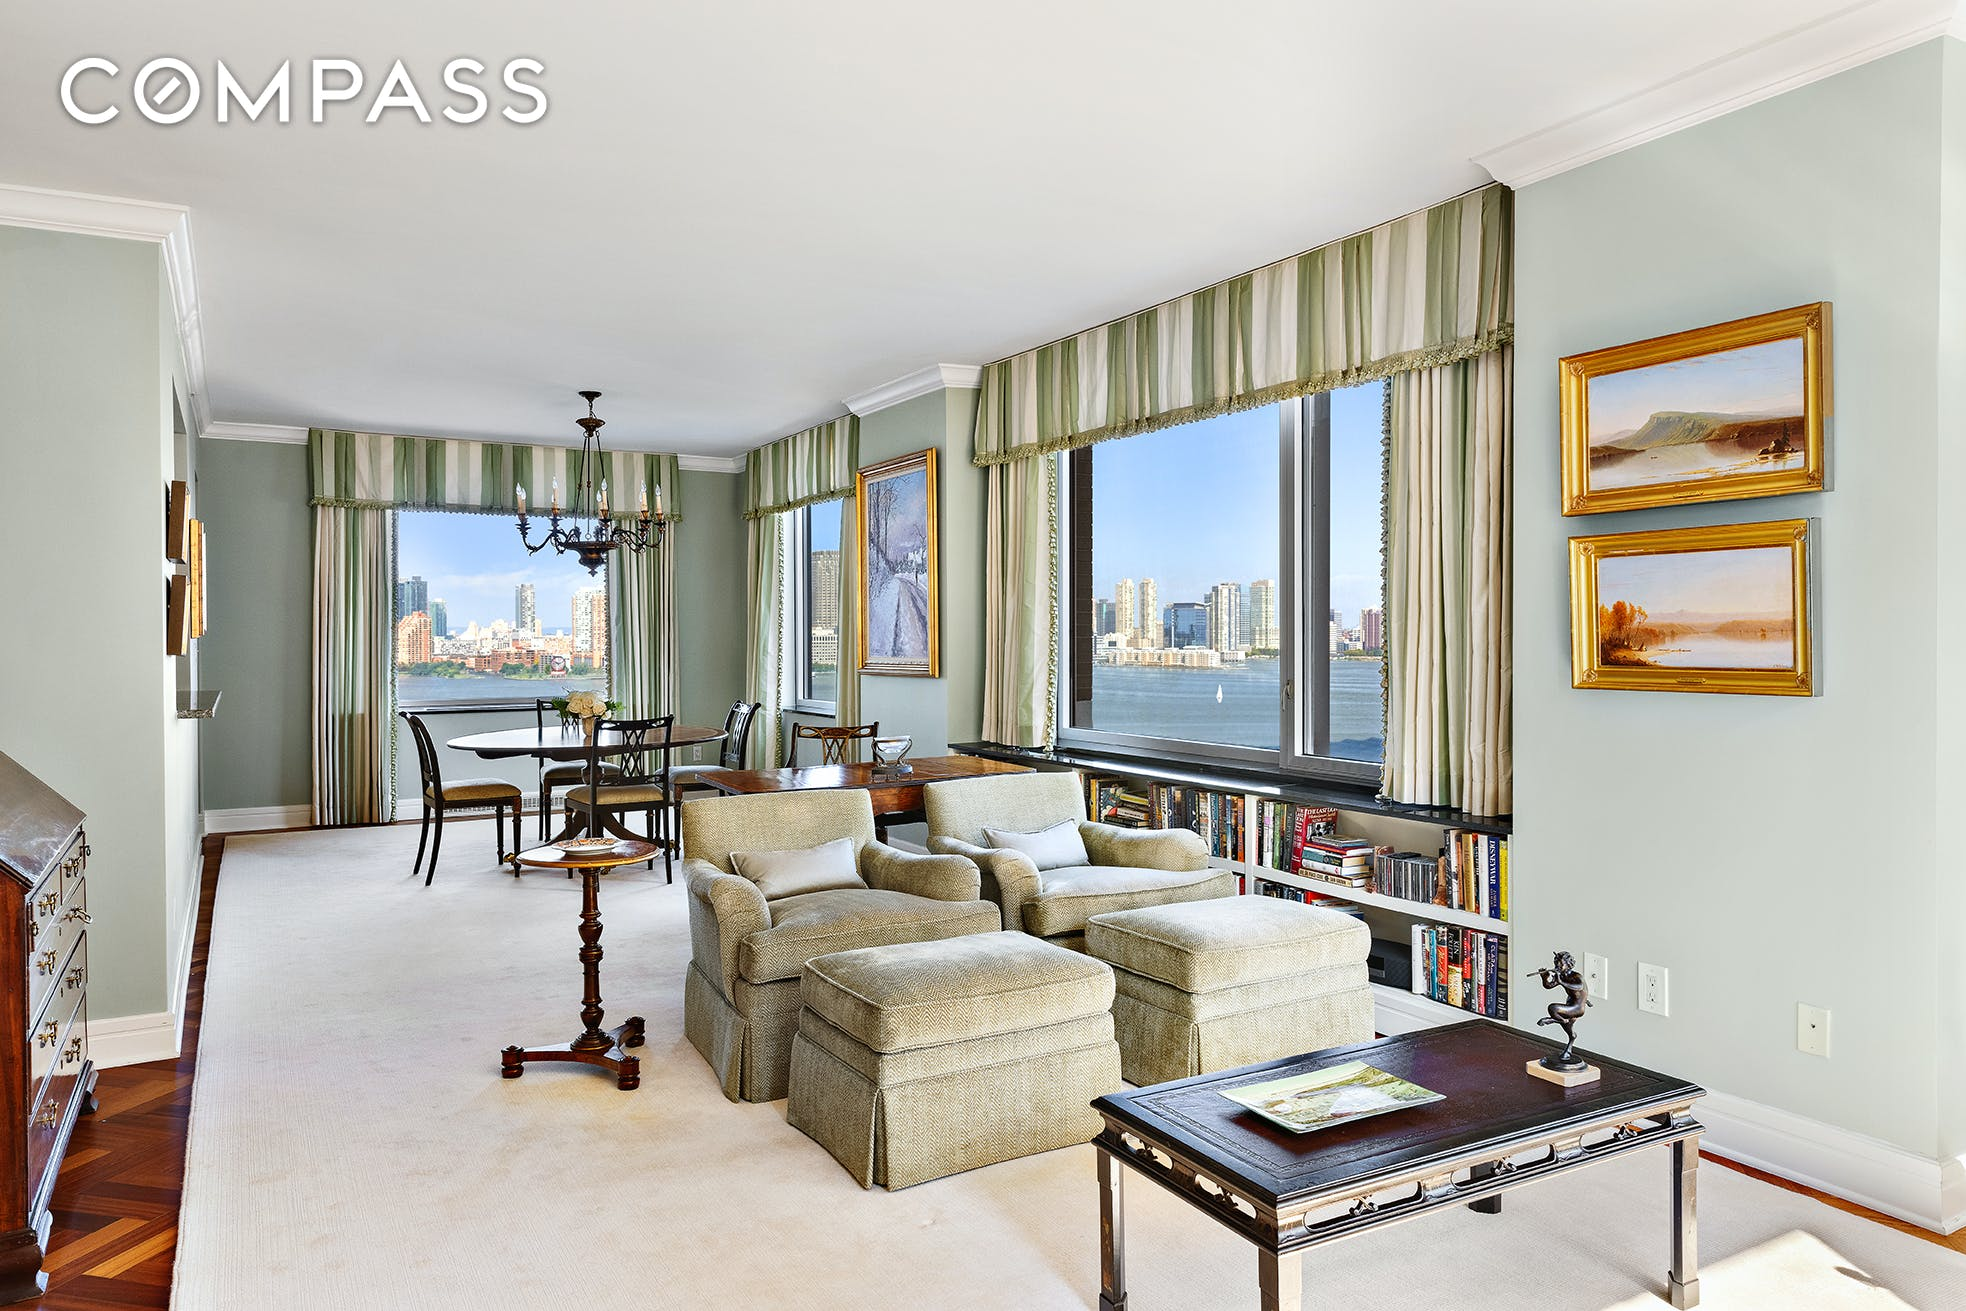 Ritz-Carlton elegance and breathtaking Hudson River views are on full display in this flawless two-bedroom, two-and-a-half-bathroom residence in desirable Battery Park City. This 1,690-square-foot home makes a dramatic first impression with a gracious foyer below a double tray ceiling. Ahead, the 35ft+ wide great room invites lavish living and entertaining surrounded by classic millwork, herringbone floors and triple-paned windows framing high-floor views to the west, north and east. From sunrise to sunset, buoyant natural light and stunning views of the downtown skyline and shimmering Hudson River become your daily backdrop. Head to the pass-through kitchen to find abundant cabinet space and upscale stainless steel appliances, including a Sub Zero refrigerator, gas cooktop, Viking wall oven, Miele dishwasher and a built-in microwave. Wake up to glorious north-facing water views in the owner's suite featuring three large custom closets and a lovely marble bathroom with a soaking tub, shower and double vanity. The split-bedroom layout places the second suite along the western exposure, where you'll find two closets, Citiquiet windows and a private bathroom featuring Scalamandr's iconic Zebras wallpaper. Double doors open the suite directly to the great room, making it ideal as a home office or study. The formal powder room includes an in-unit washer-dryer, and central HVAC ensures year-round comfort in this serene urban sanctuary. The Ritz-Carlton Battery Park condominiums offer a private, residents-only entrance combined with the revered brand's exceptional white-glove amenities. Enjoy 24-hour doorman and concierge service, gym and valet parking. Surrounded by waterfront parks and esplanades, this home puts endless outdoor space right at your doorstep. Visit Brookfield Place or Westfield World Trade Center for outstanding dining and shopping, or venture into the nearby Financial District for more world-class offerings. The 1, 4/5, R and J/Z trains and nearby CitiBik